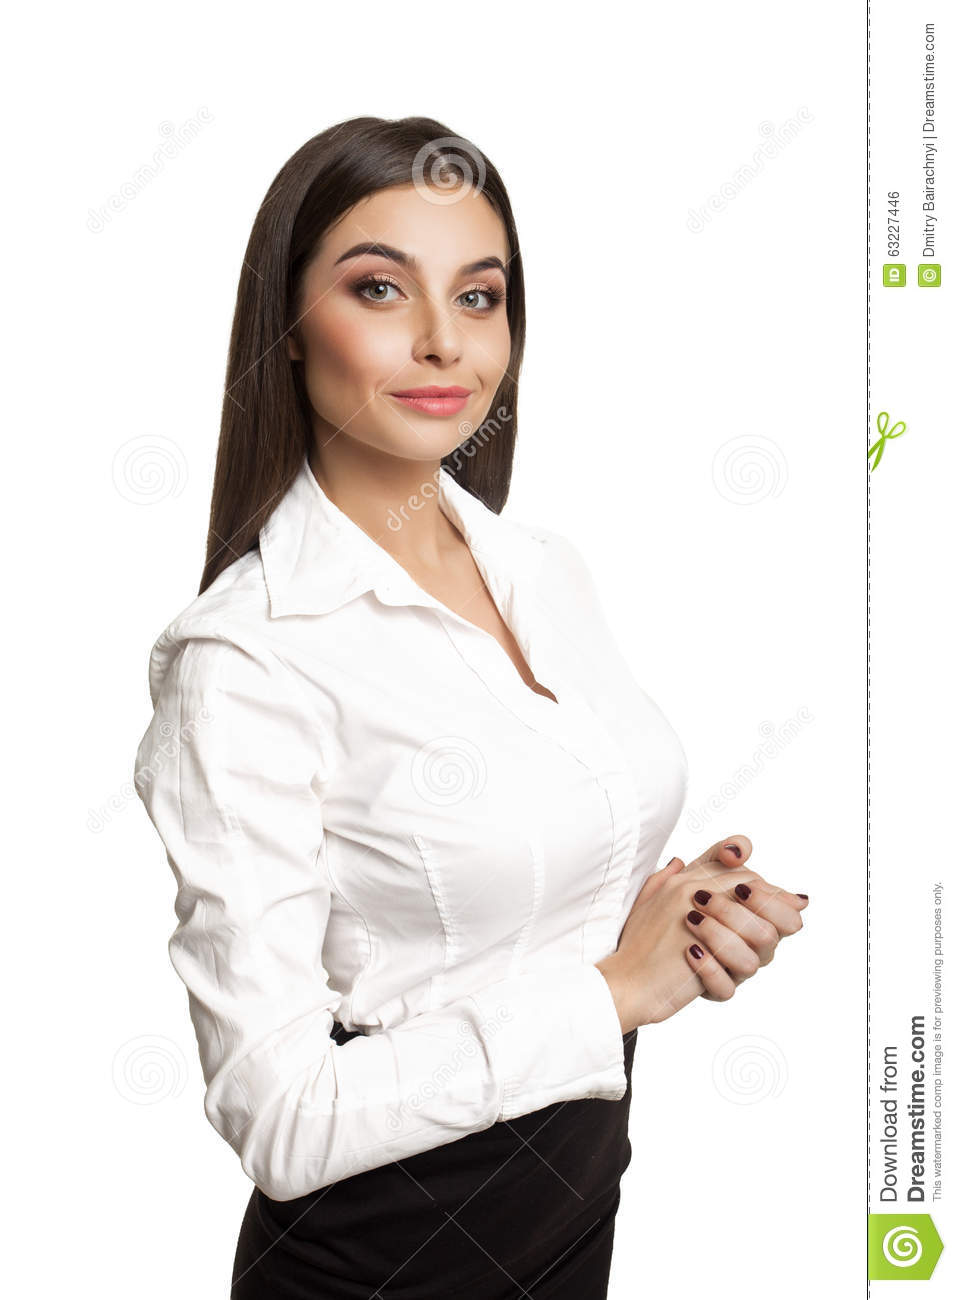 Young Woman In White Blouse Stock Photo - Image: 63227446